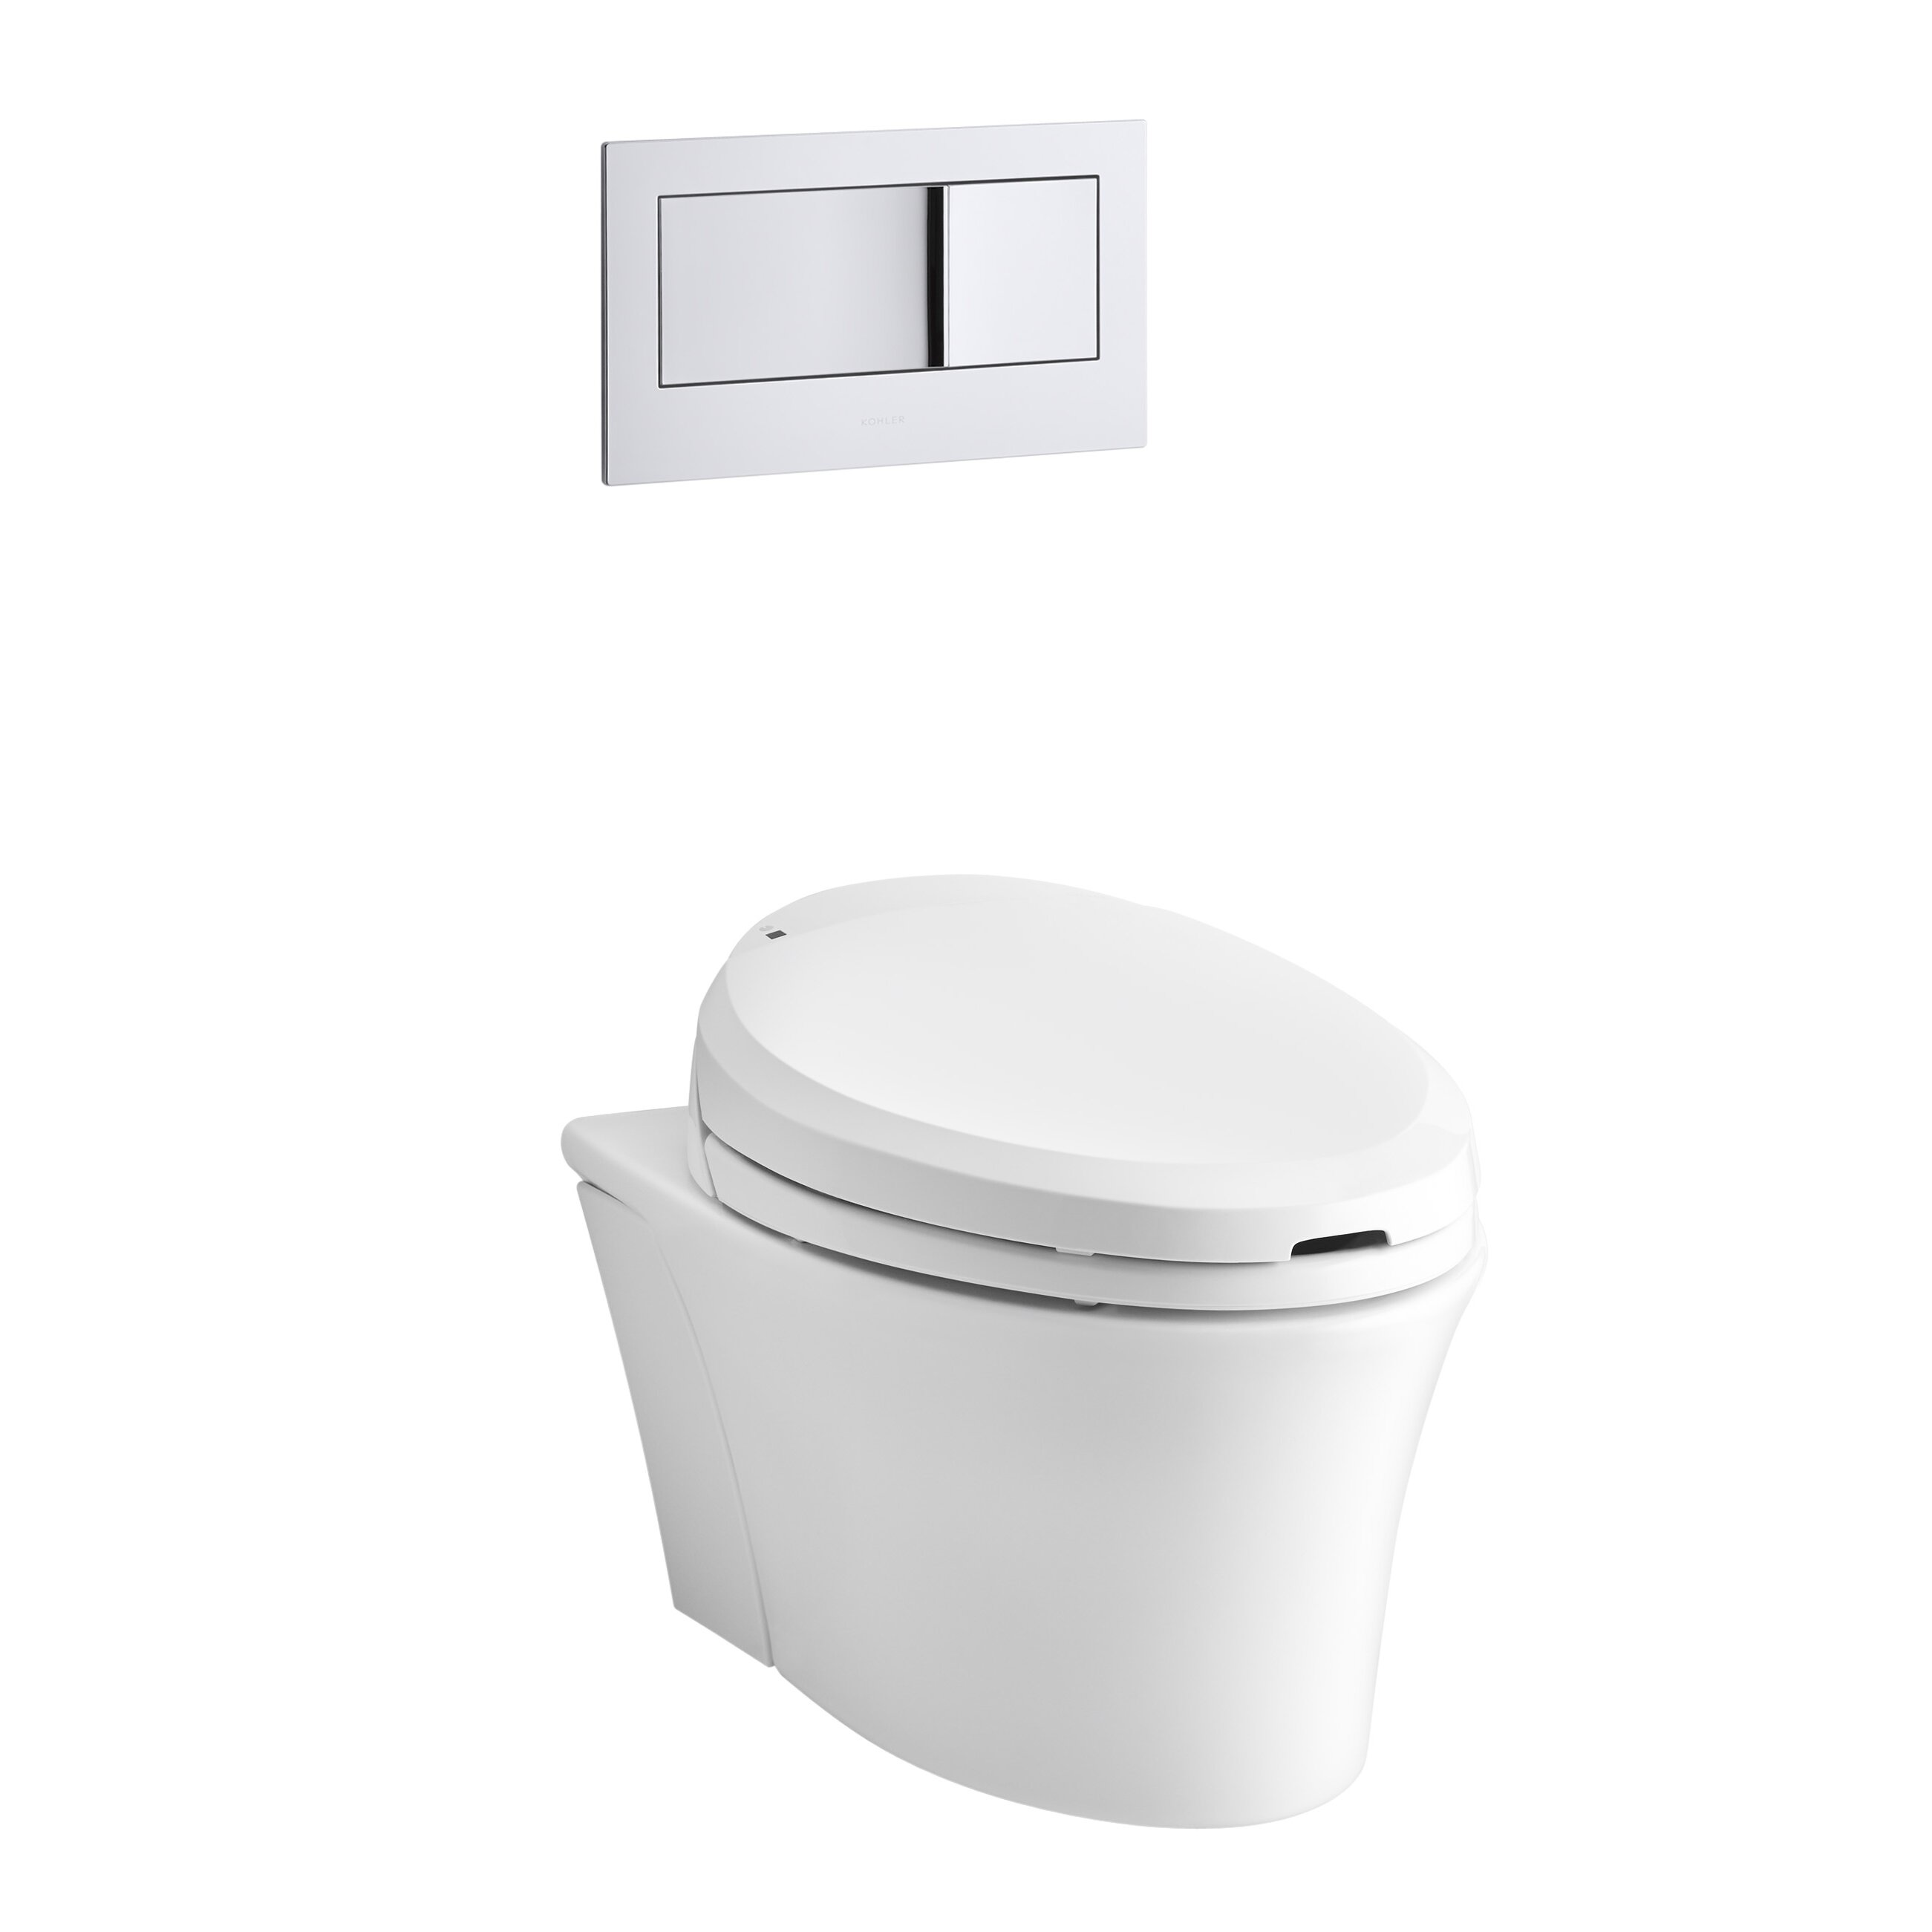 kohler veil one piece elongated dual flush wall hung toilet with c3 bidet toilet seat and 2 x6. Black Bedroom Furniture Sets. Home Design Ideas